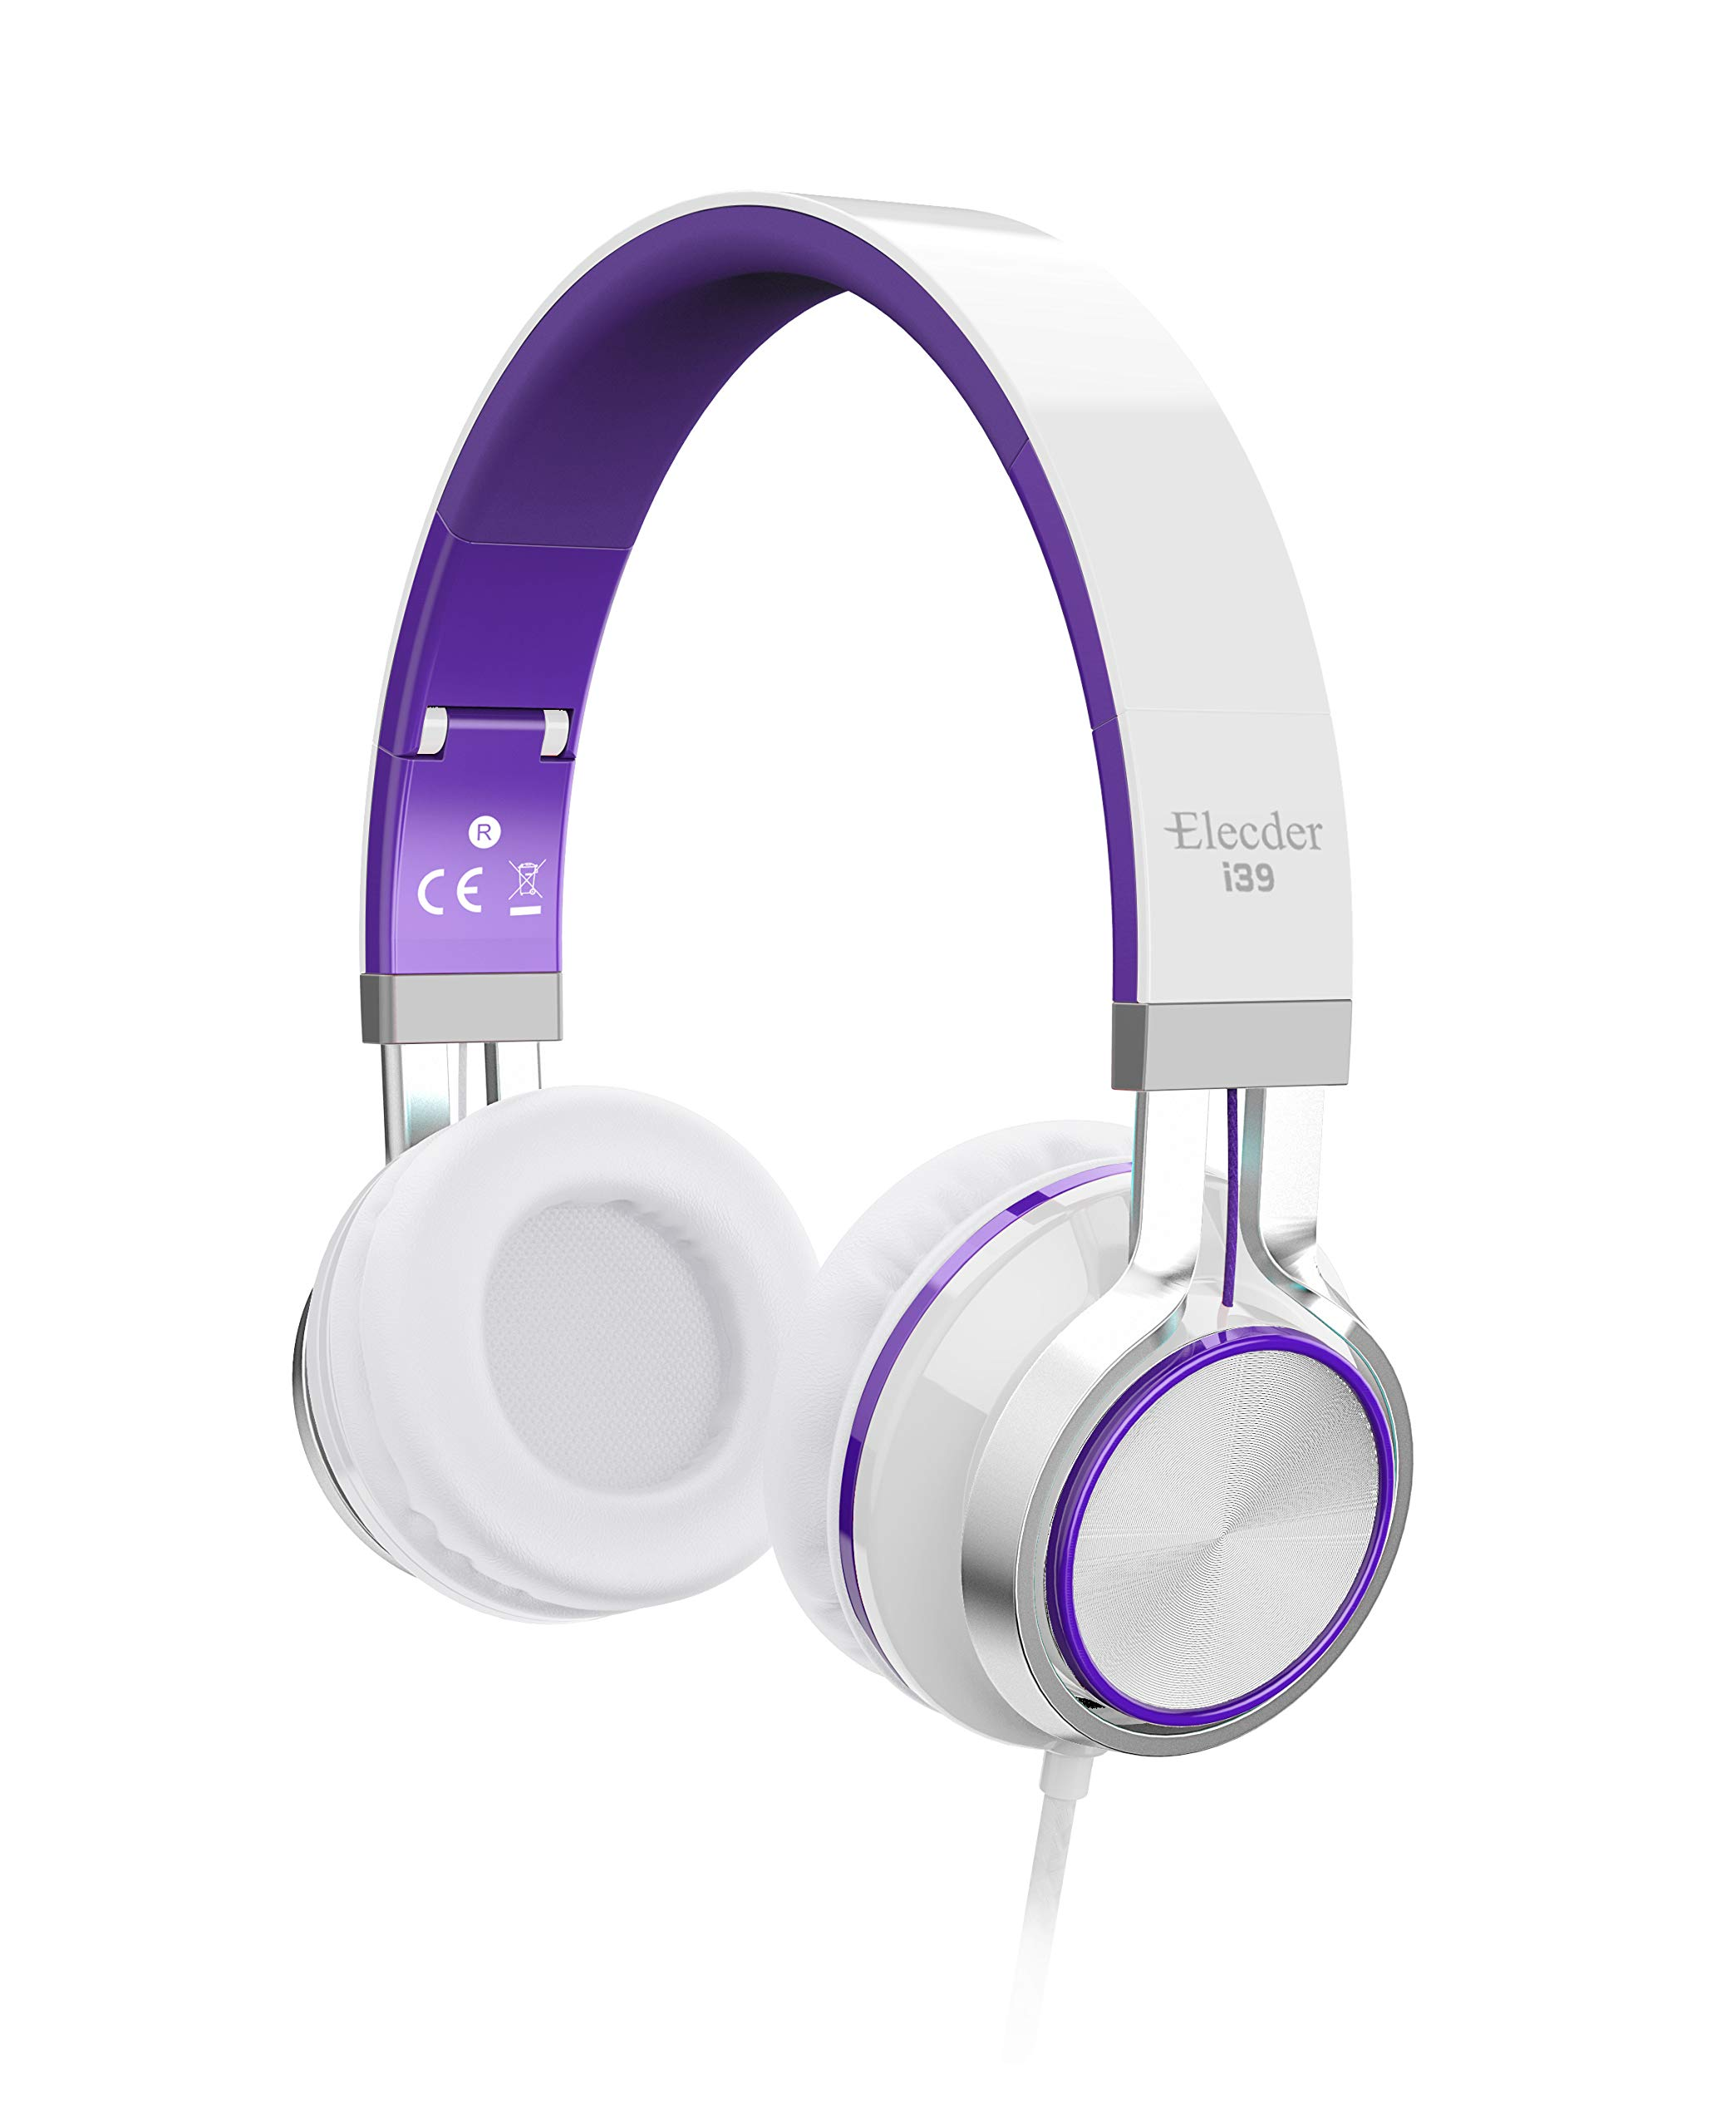 Elecder i39 Headphones with Microphone Foldable Lightweight Adjustable On Ear Headsets with 3.5mm Jack for iPad Cellphones Computer MP3/4 Kindle Airplane School Purple/White